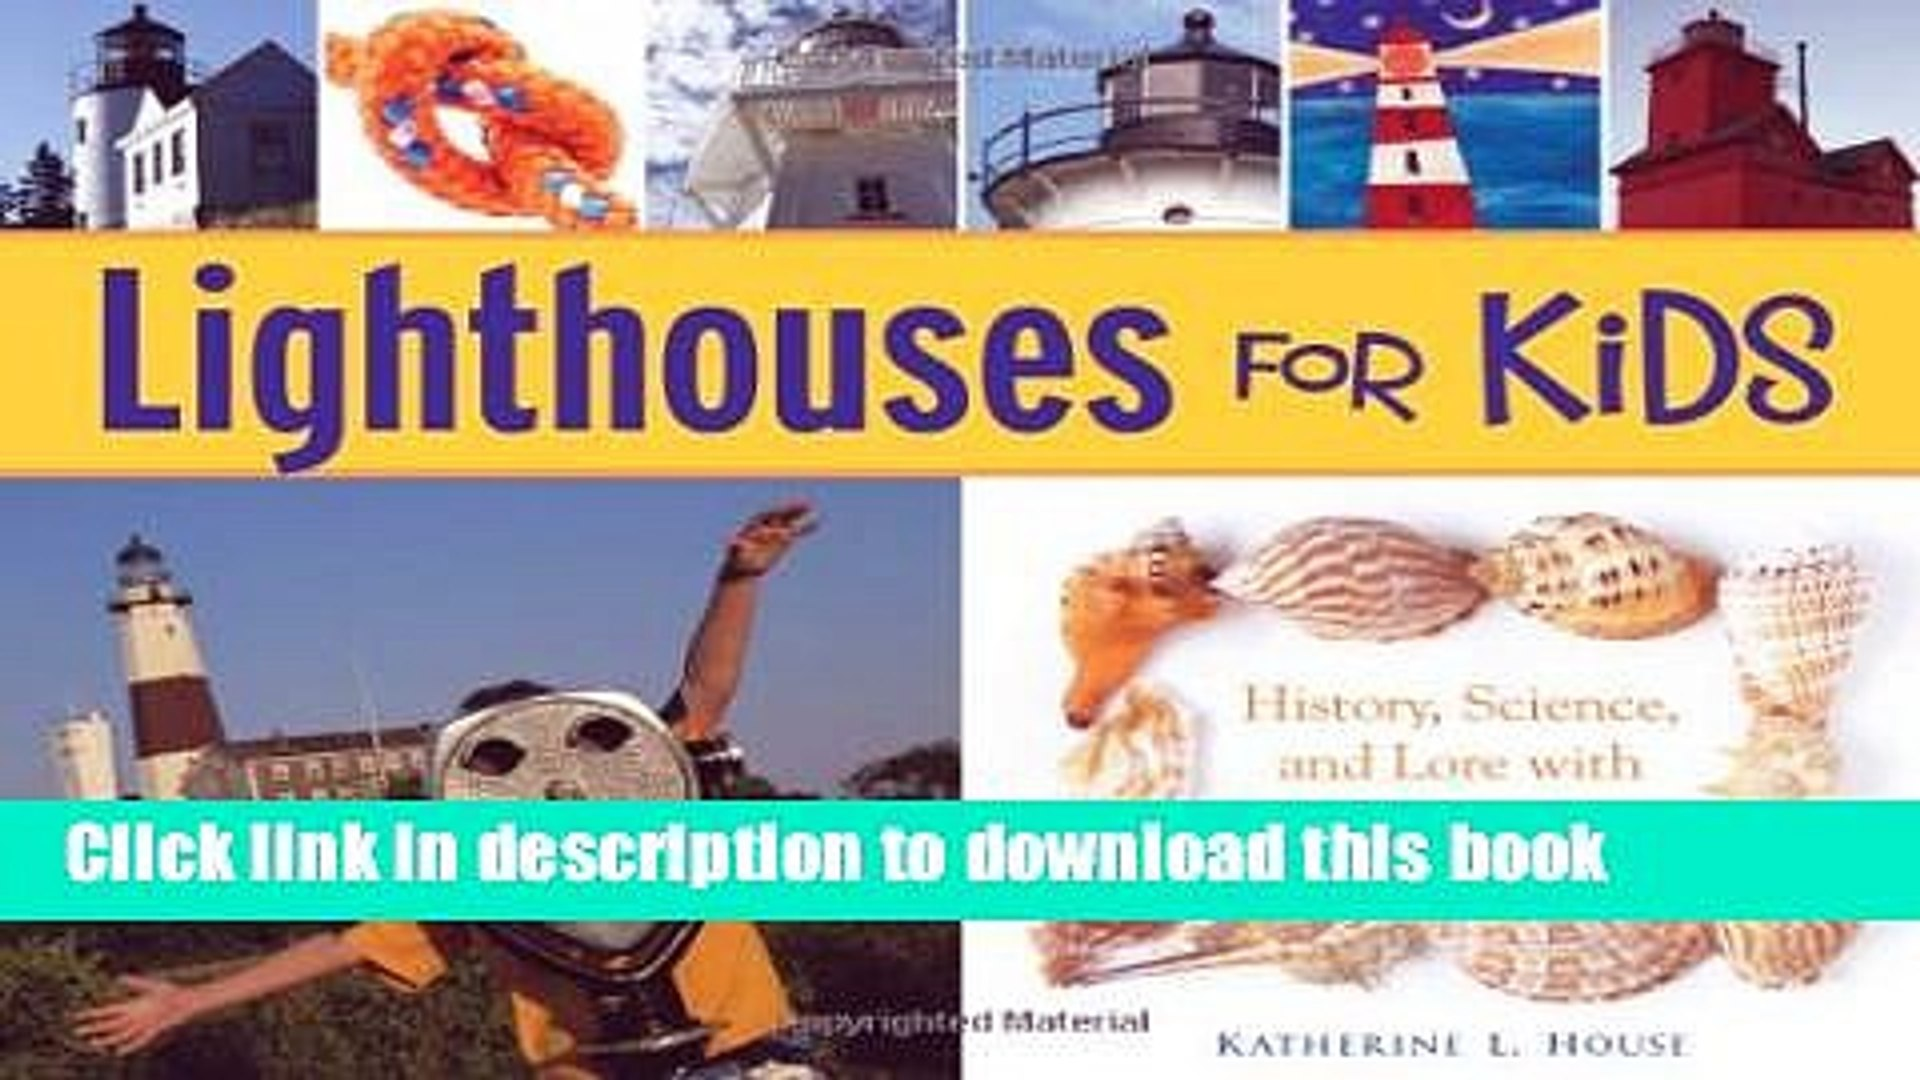 [Popular Books] Lighthouses for Kids: History, Science, and Lore with 21 Activities (For Kids